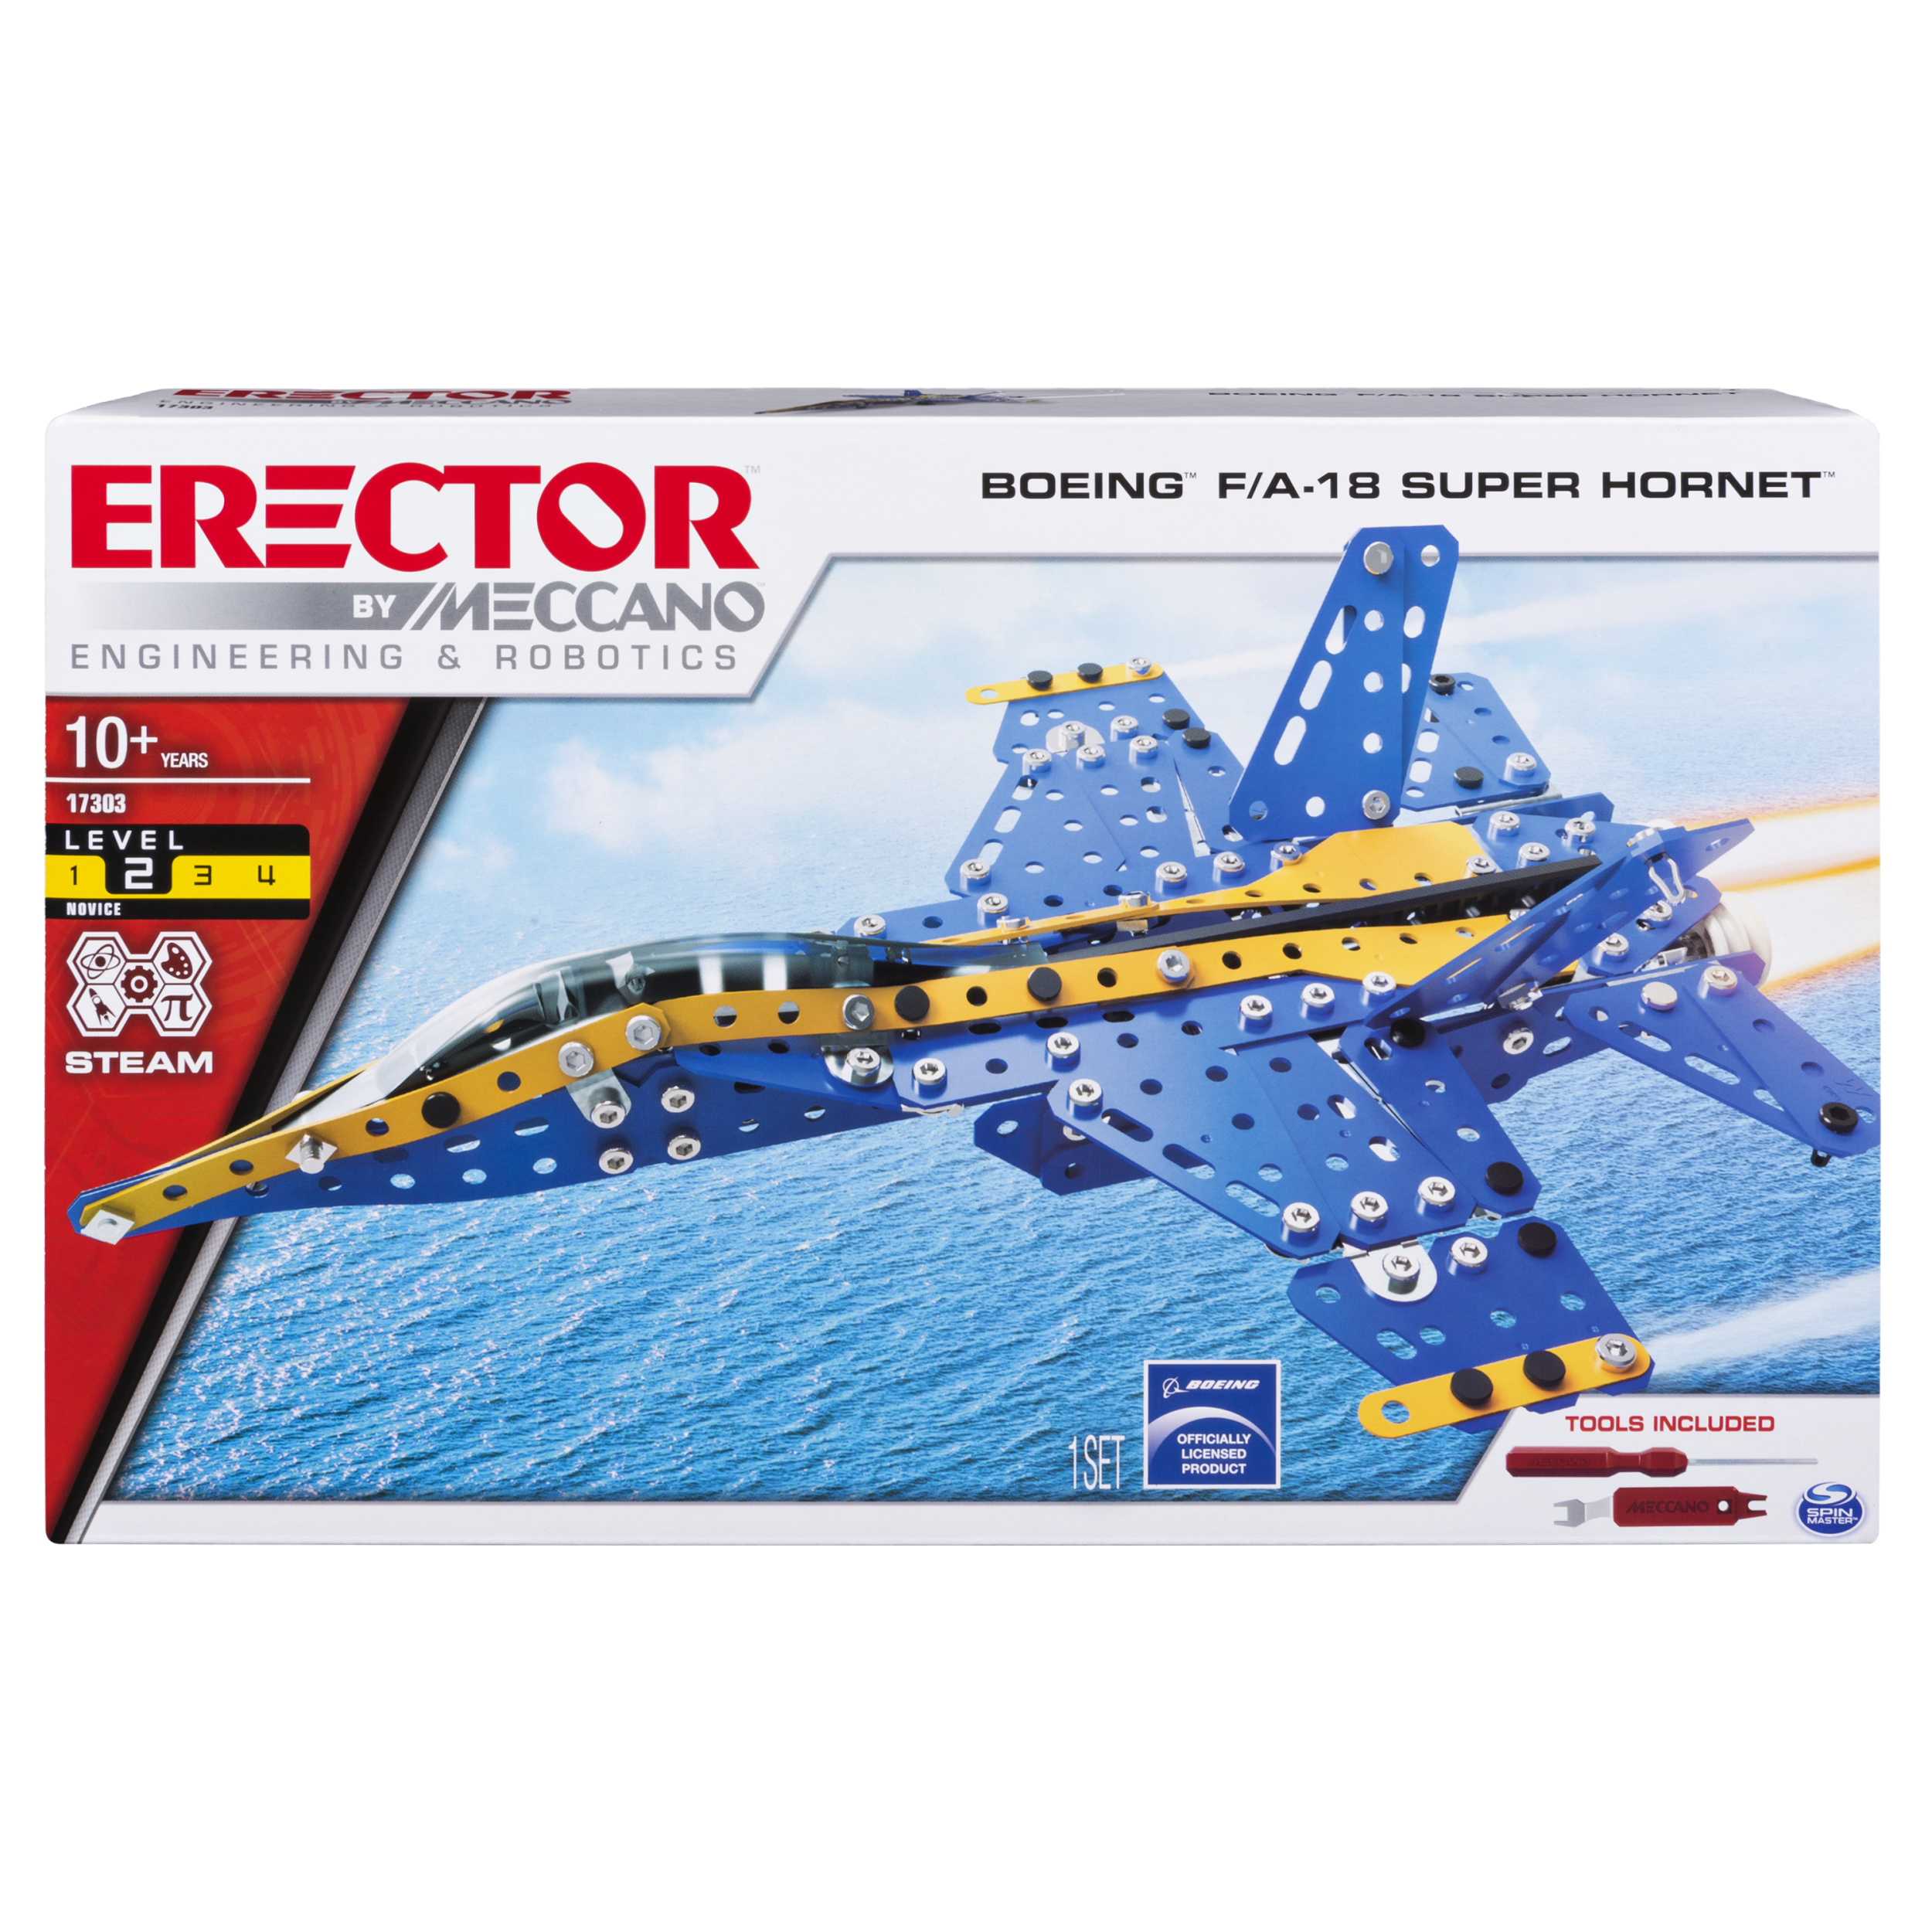 Erector by Meccano, Boeing F/A-18 Super Hornet STEM Building Set with Foldable Wings, for Ages 10 and Up